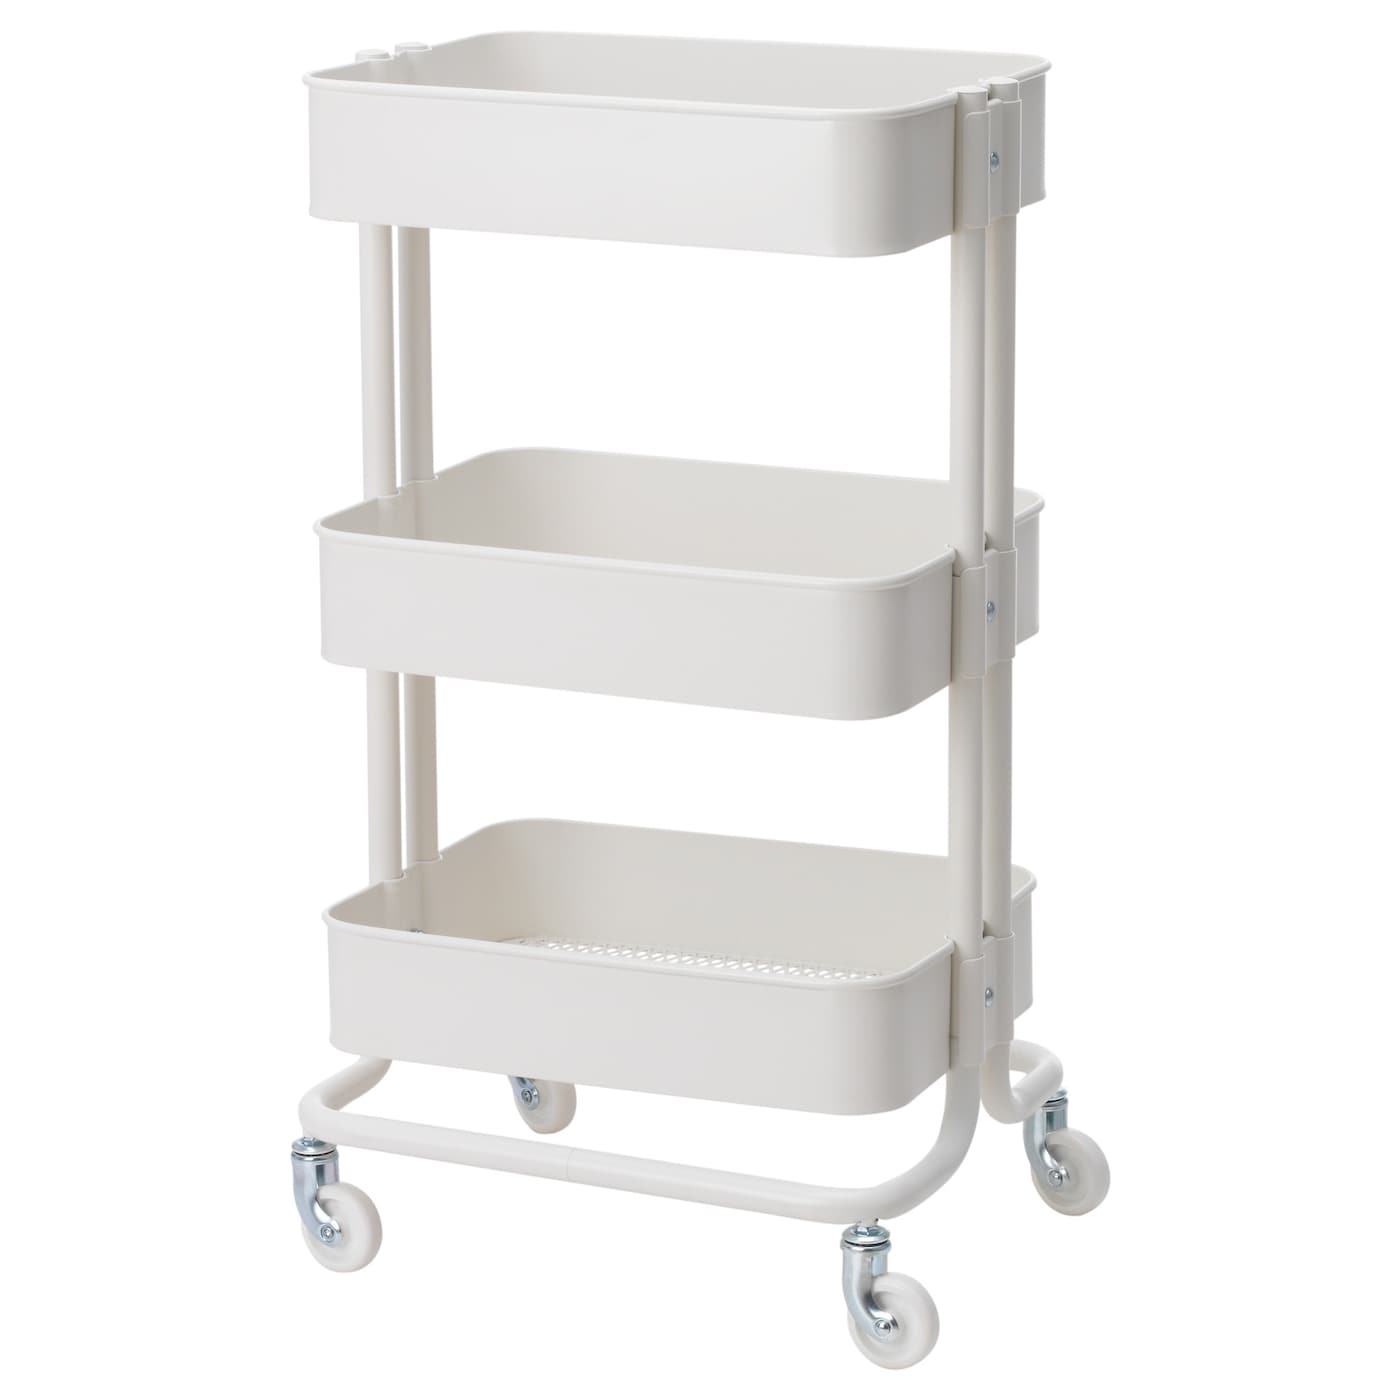 Ikea RÅskog Trolley Perfect As Extra Storage In Your Kitchen Hall Bedroom Or Home